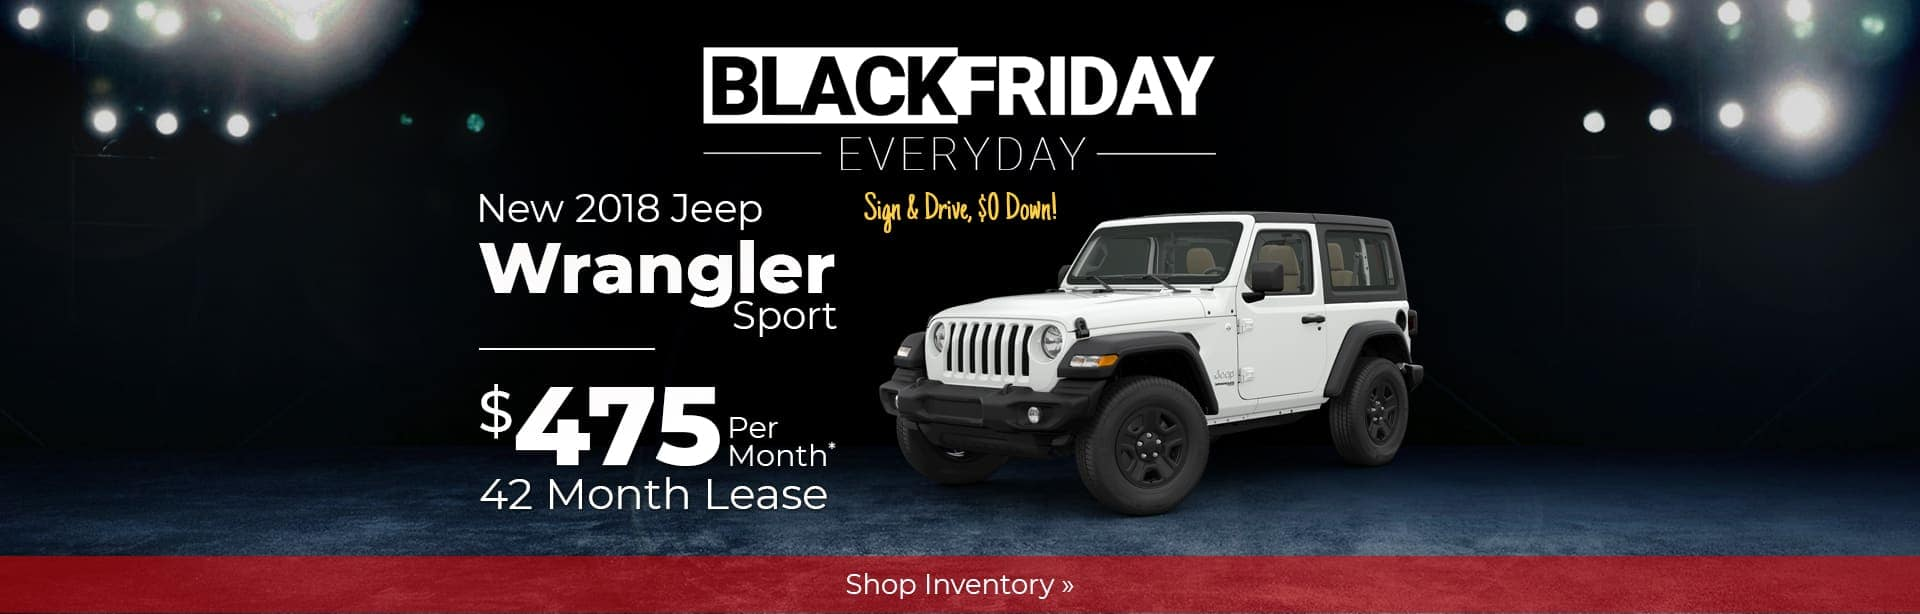 2018 Jeep Wrangler Black Friday Special near Lafayette, Indiana.